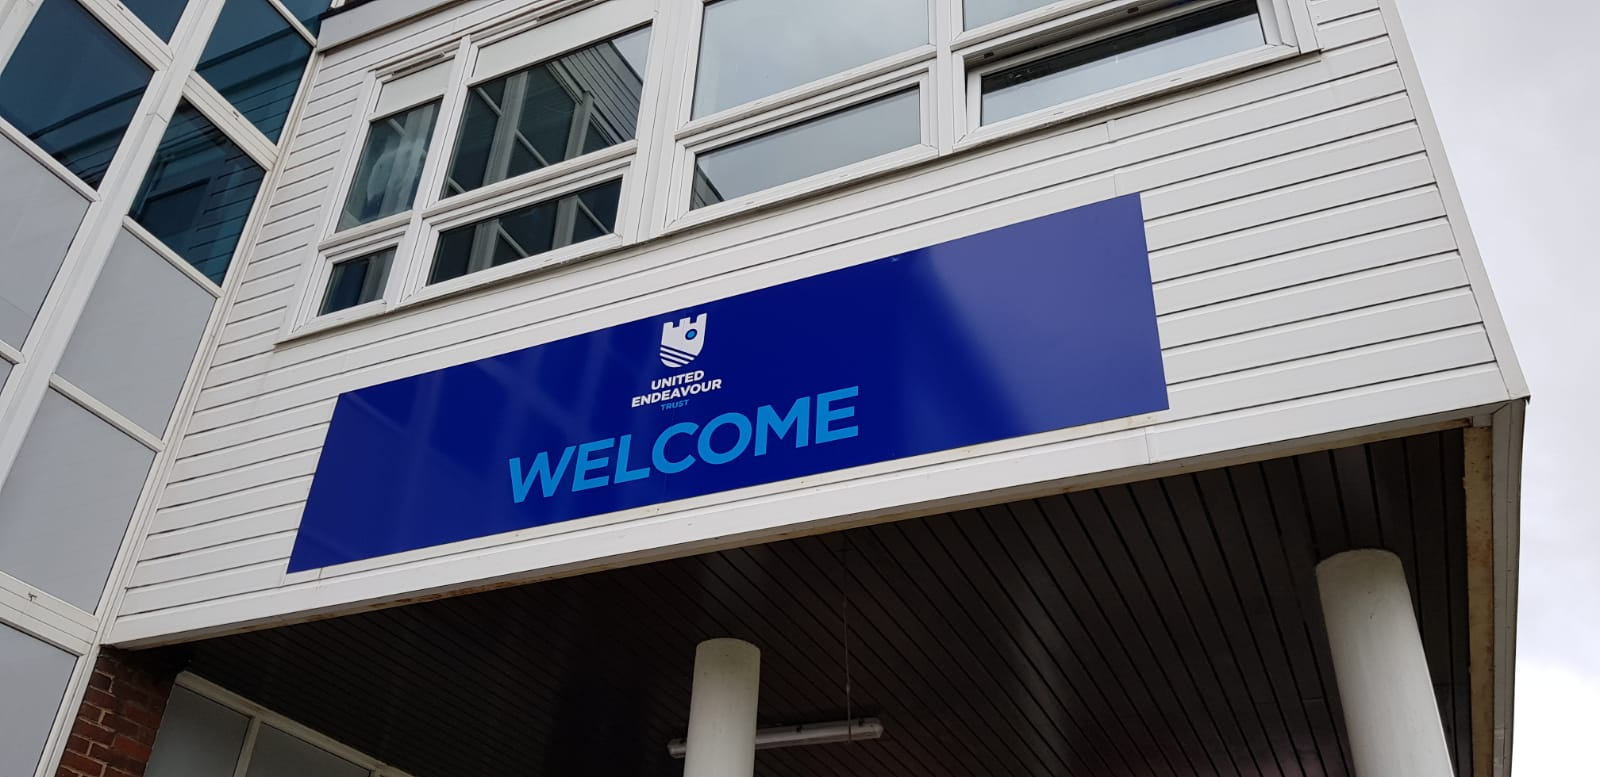 Welcome school signs